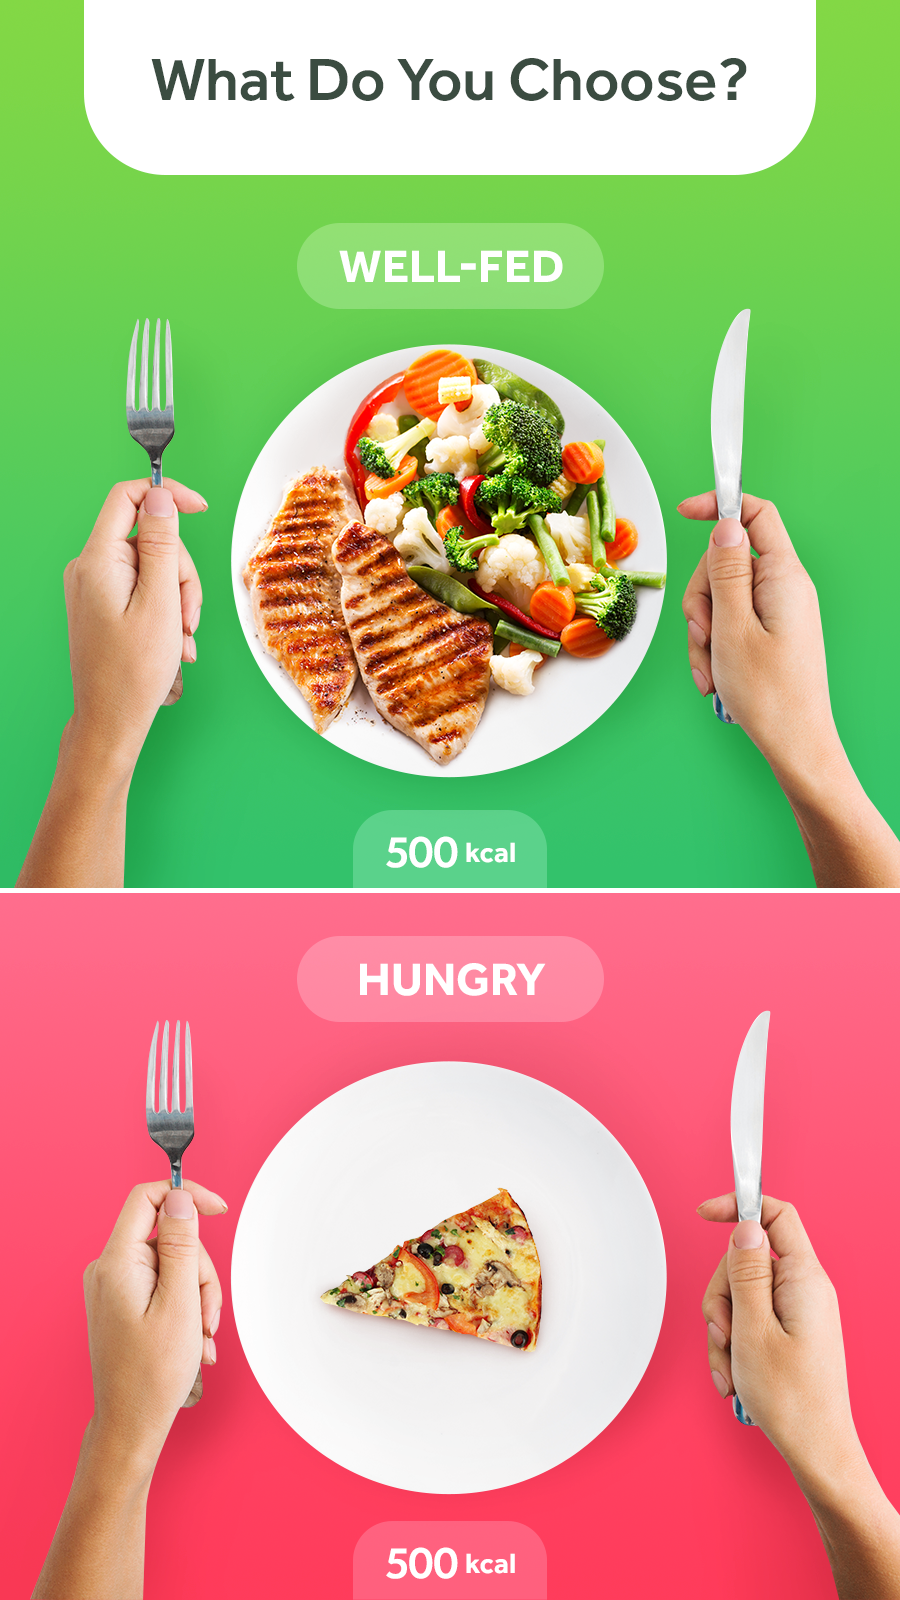 Reach your wellness goals successfully with GetFit Diet